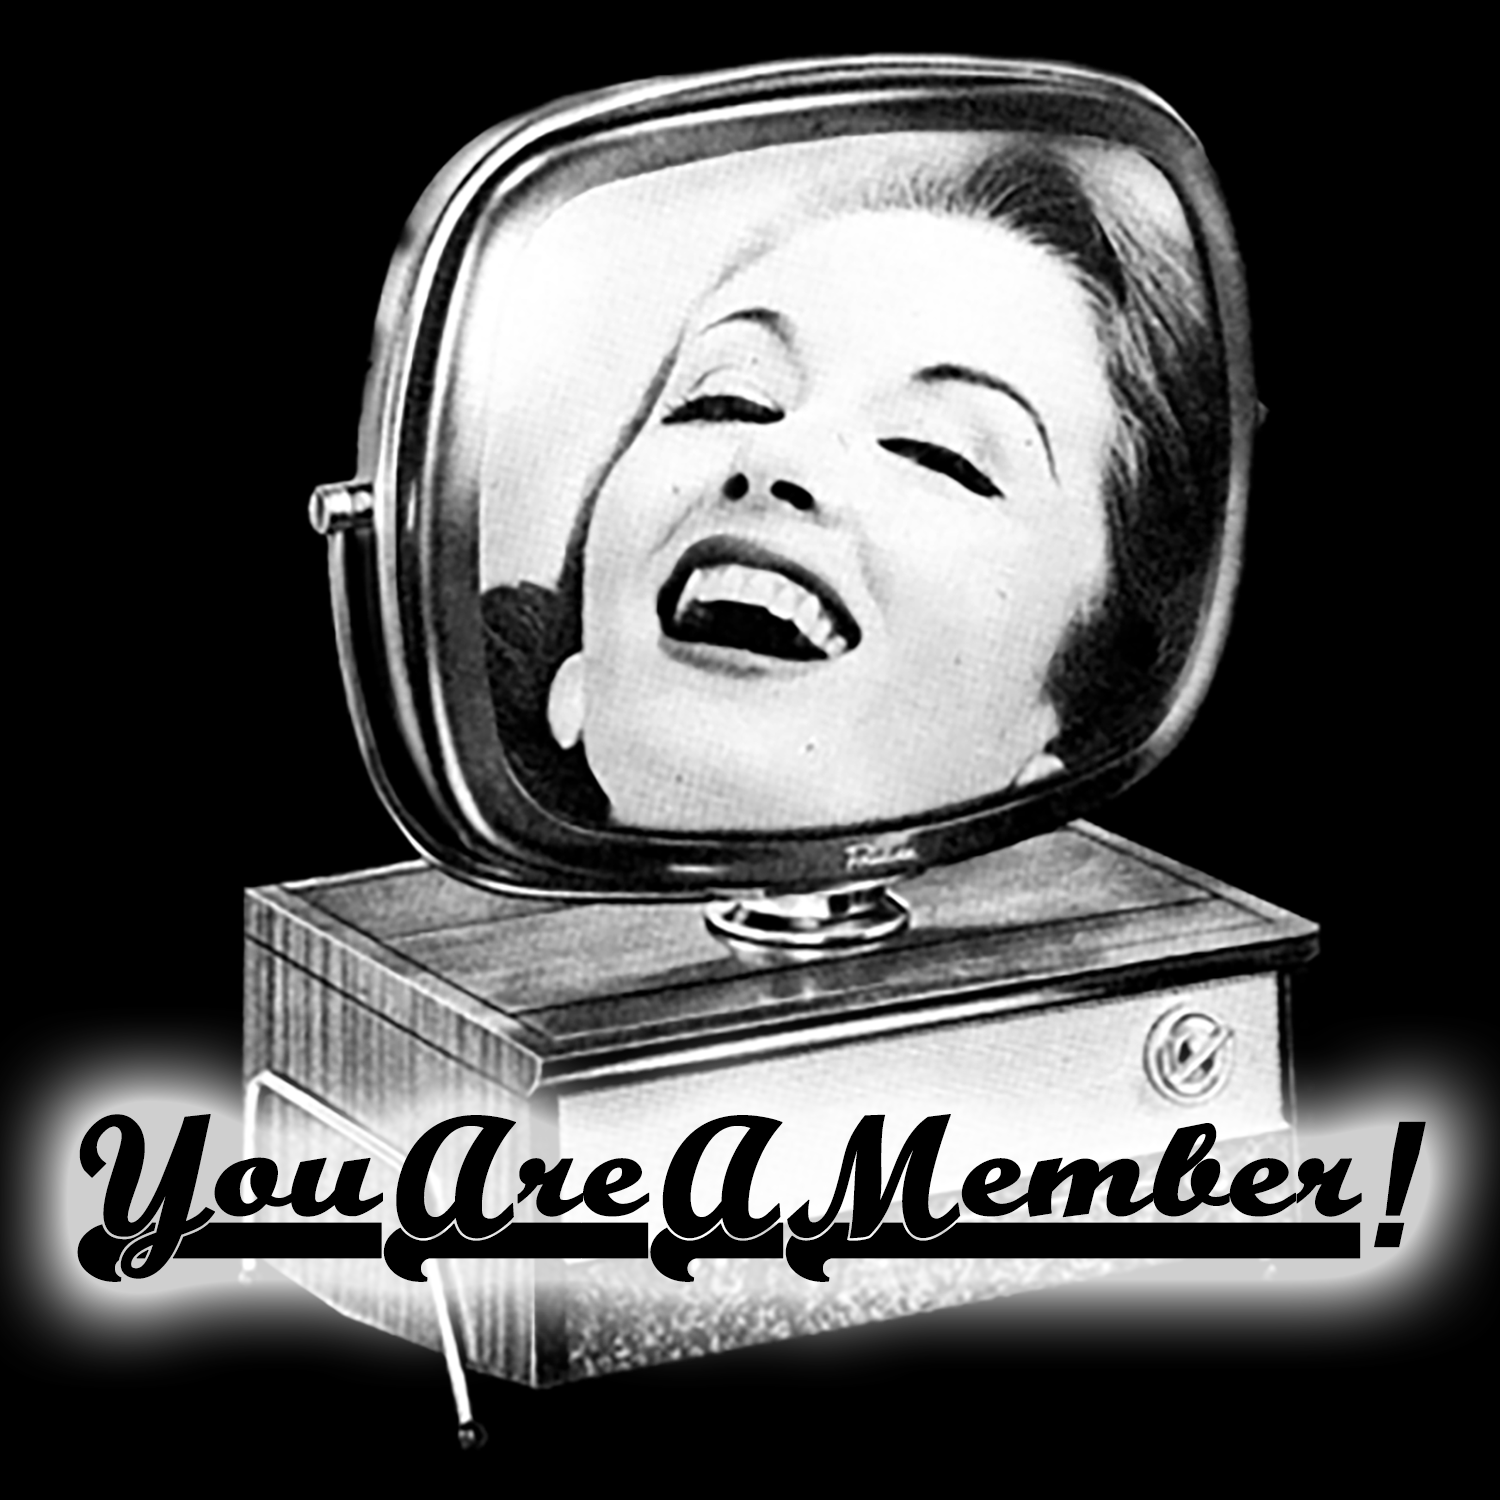 uramember | You are a Member!